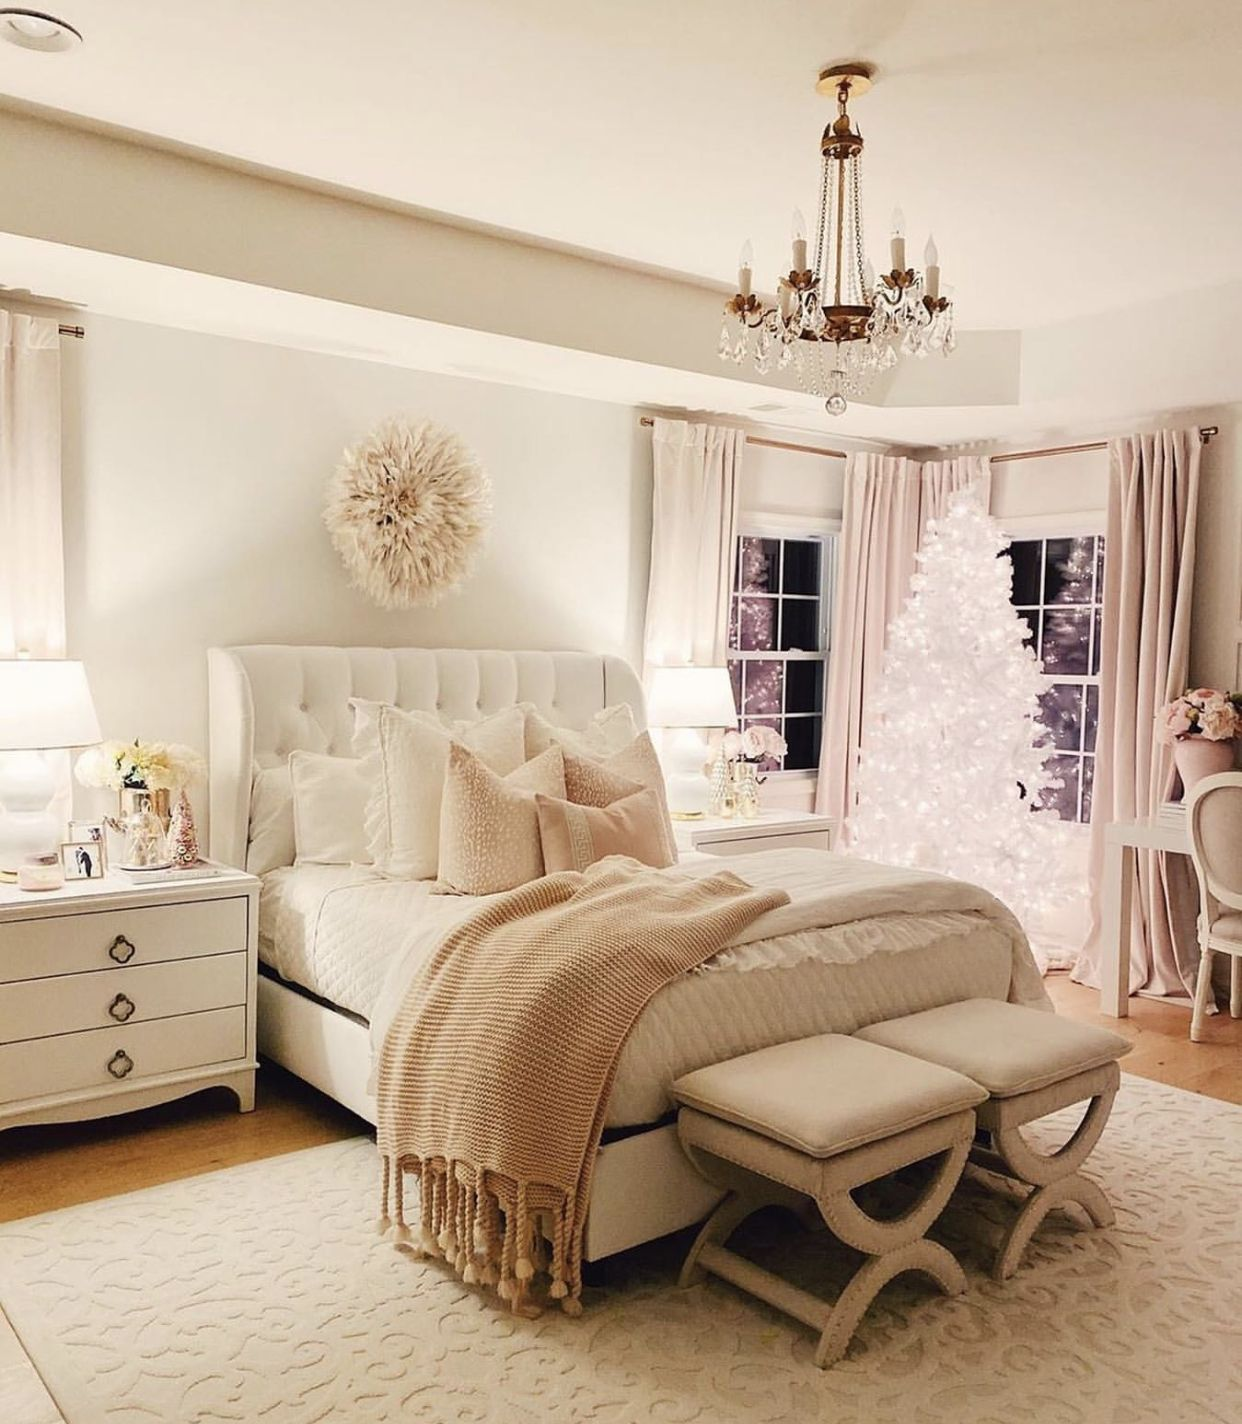 Pin On Cozy Living Space Ideas Beige bedroom decorating ideas